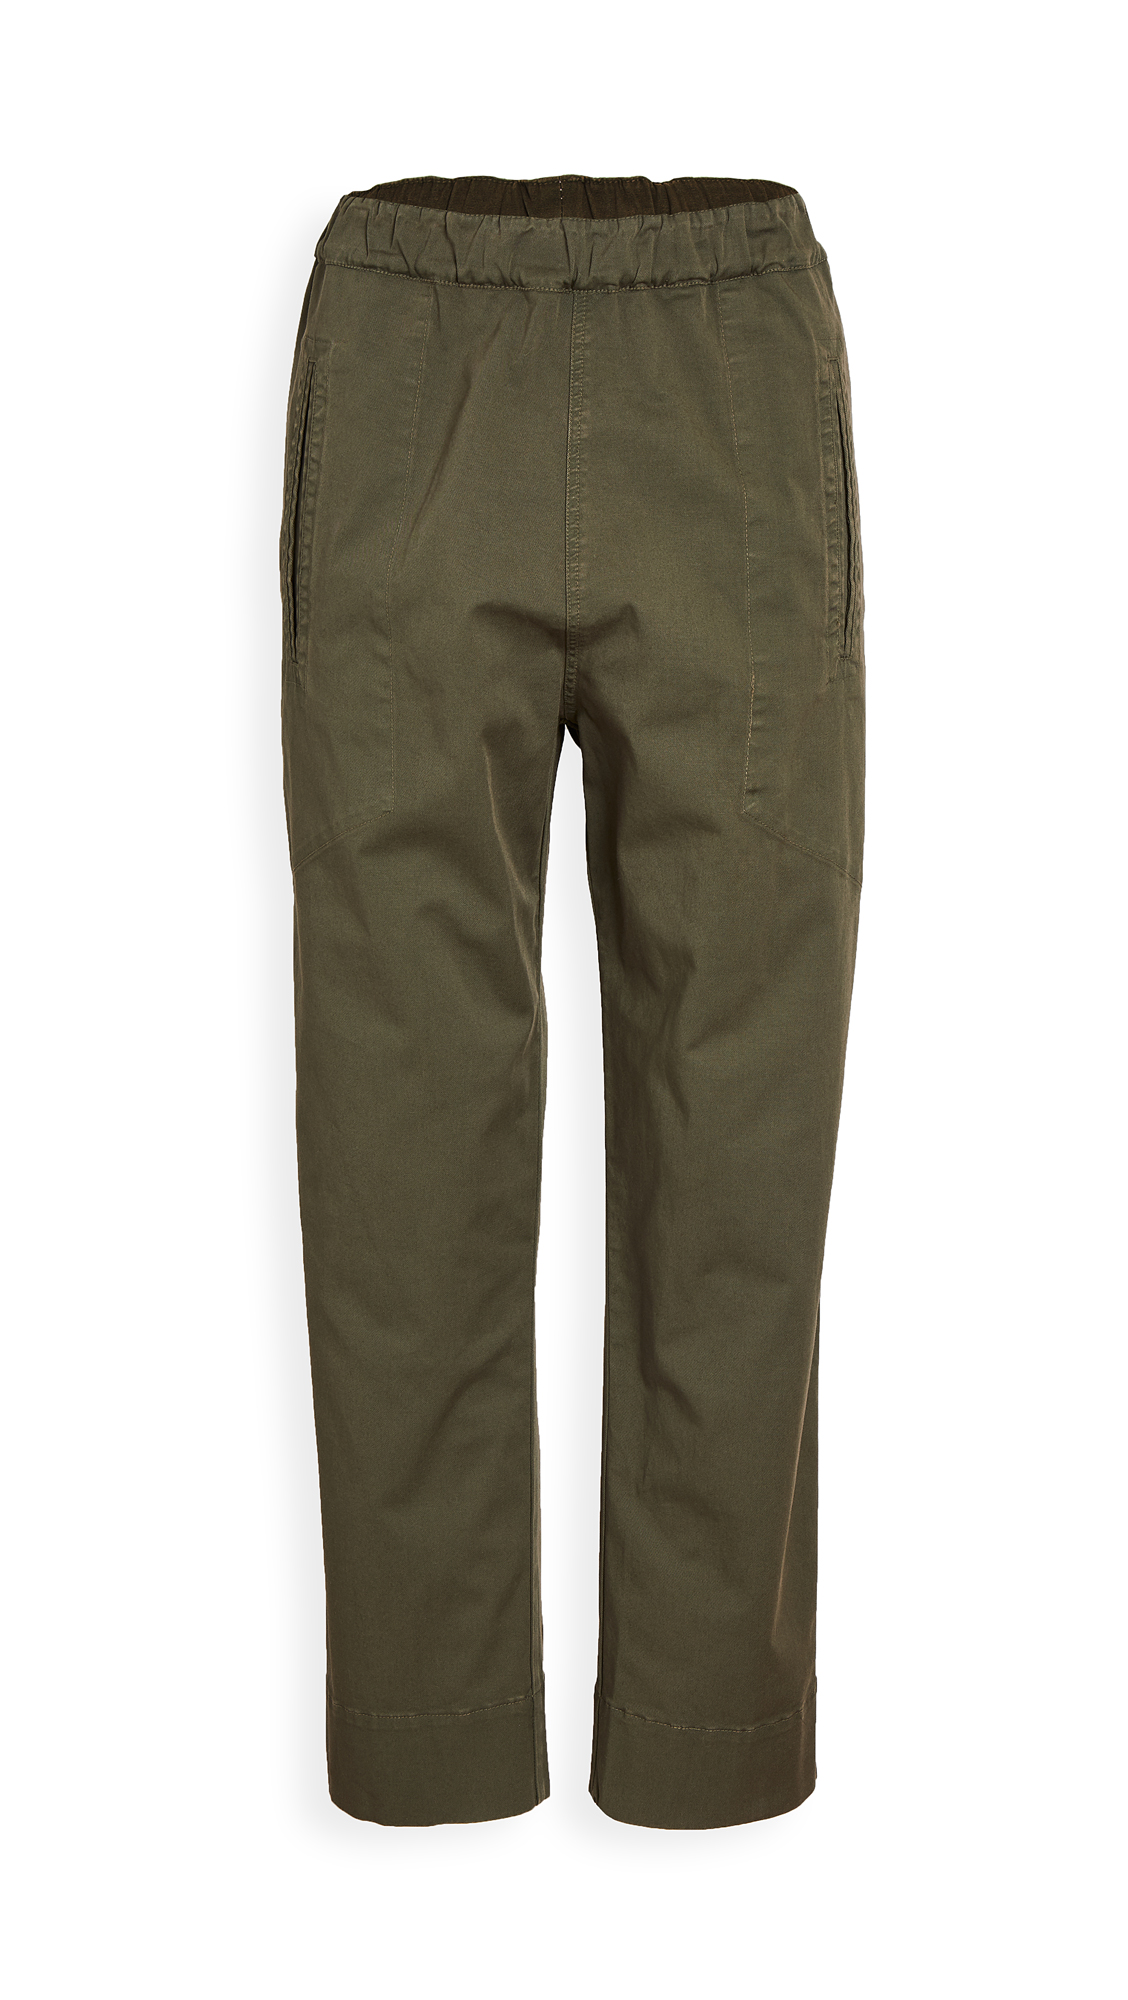 Bassike Slouchy Pull On Pants